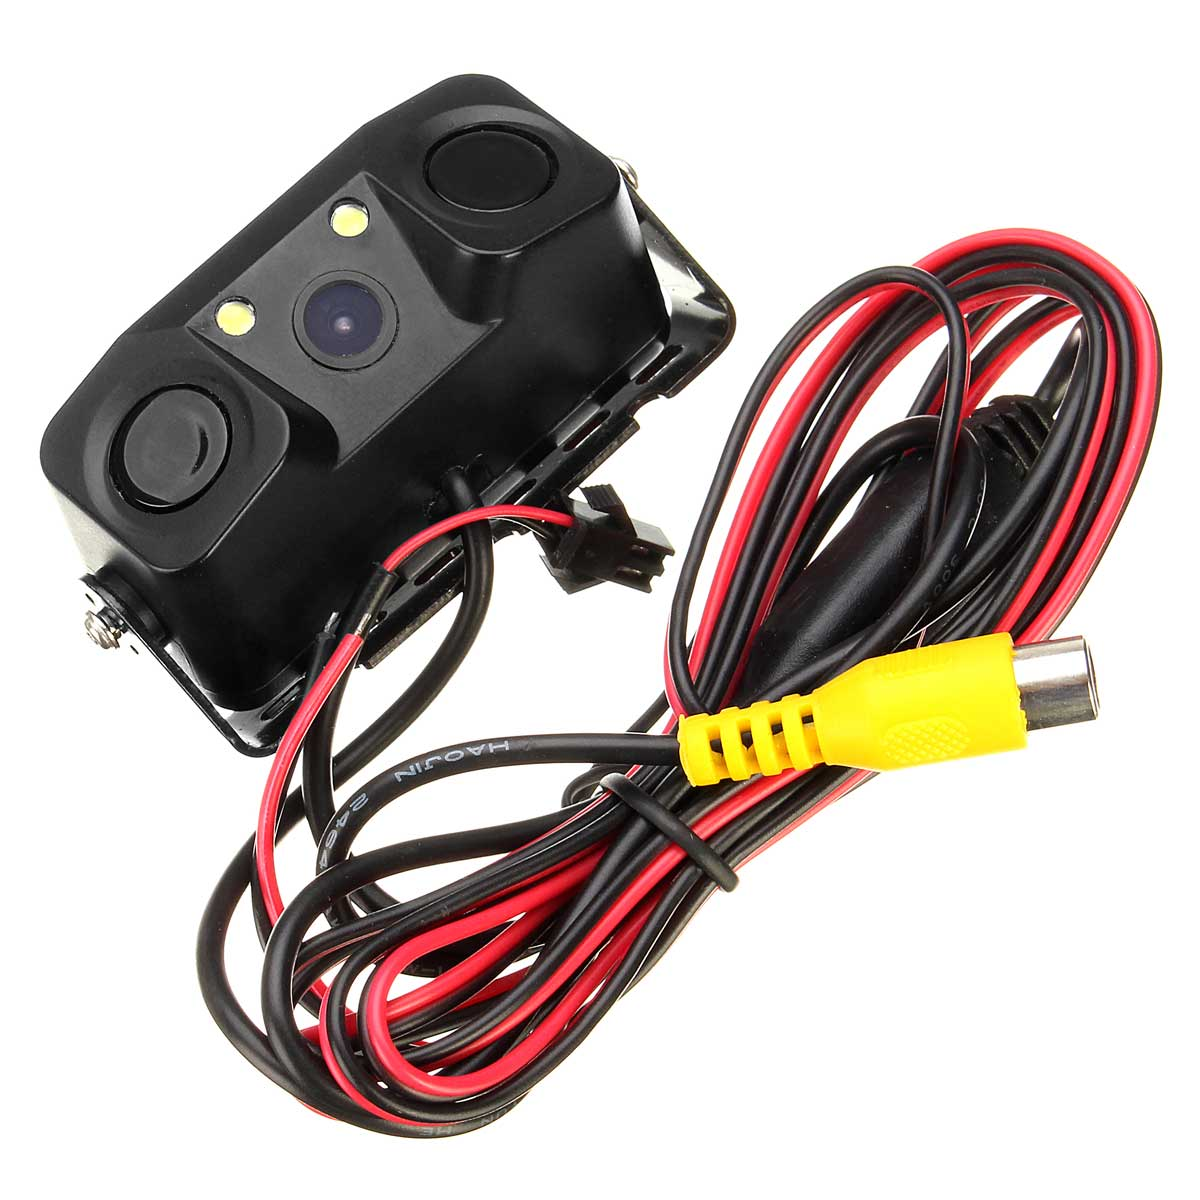 3 In 1 Video Car Reverse Backup Rear View Camera Parking Sensor Radar Detector